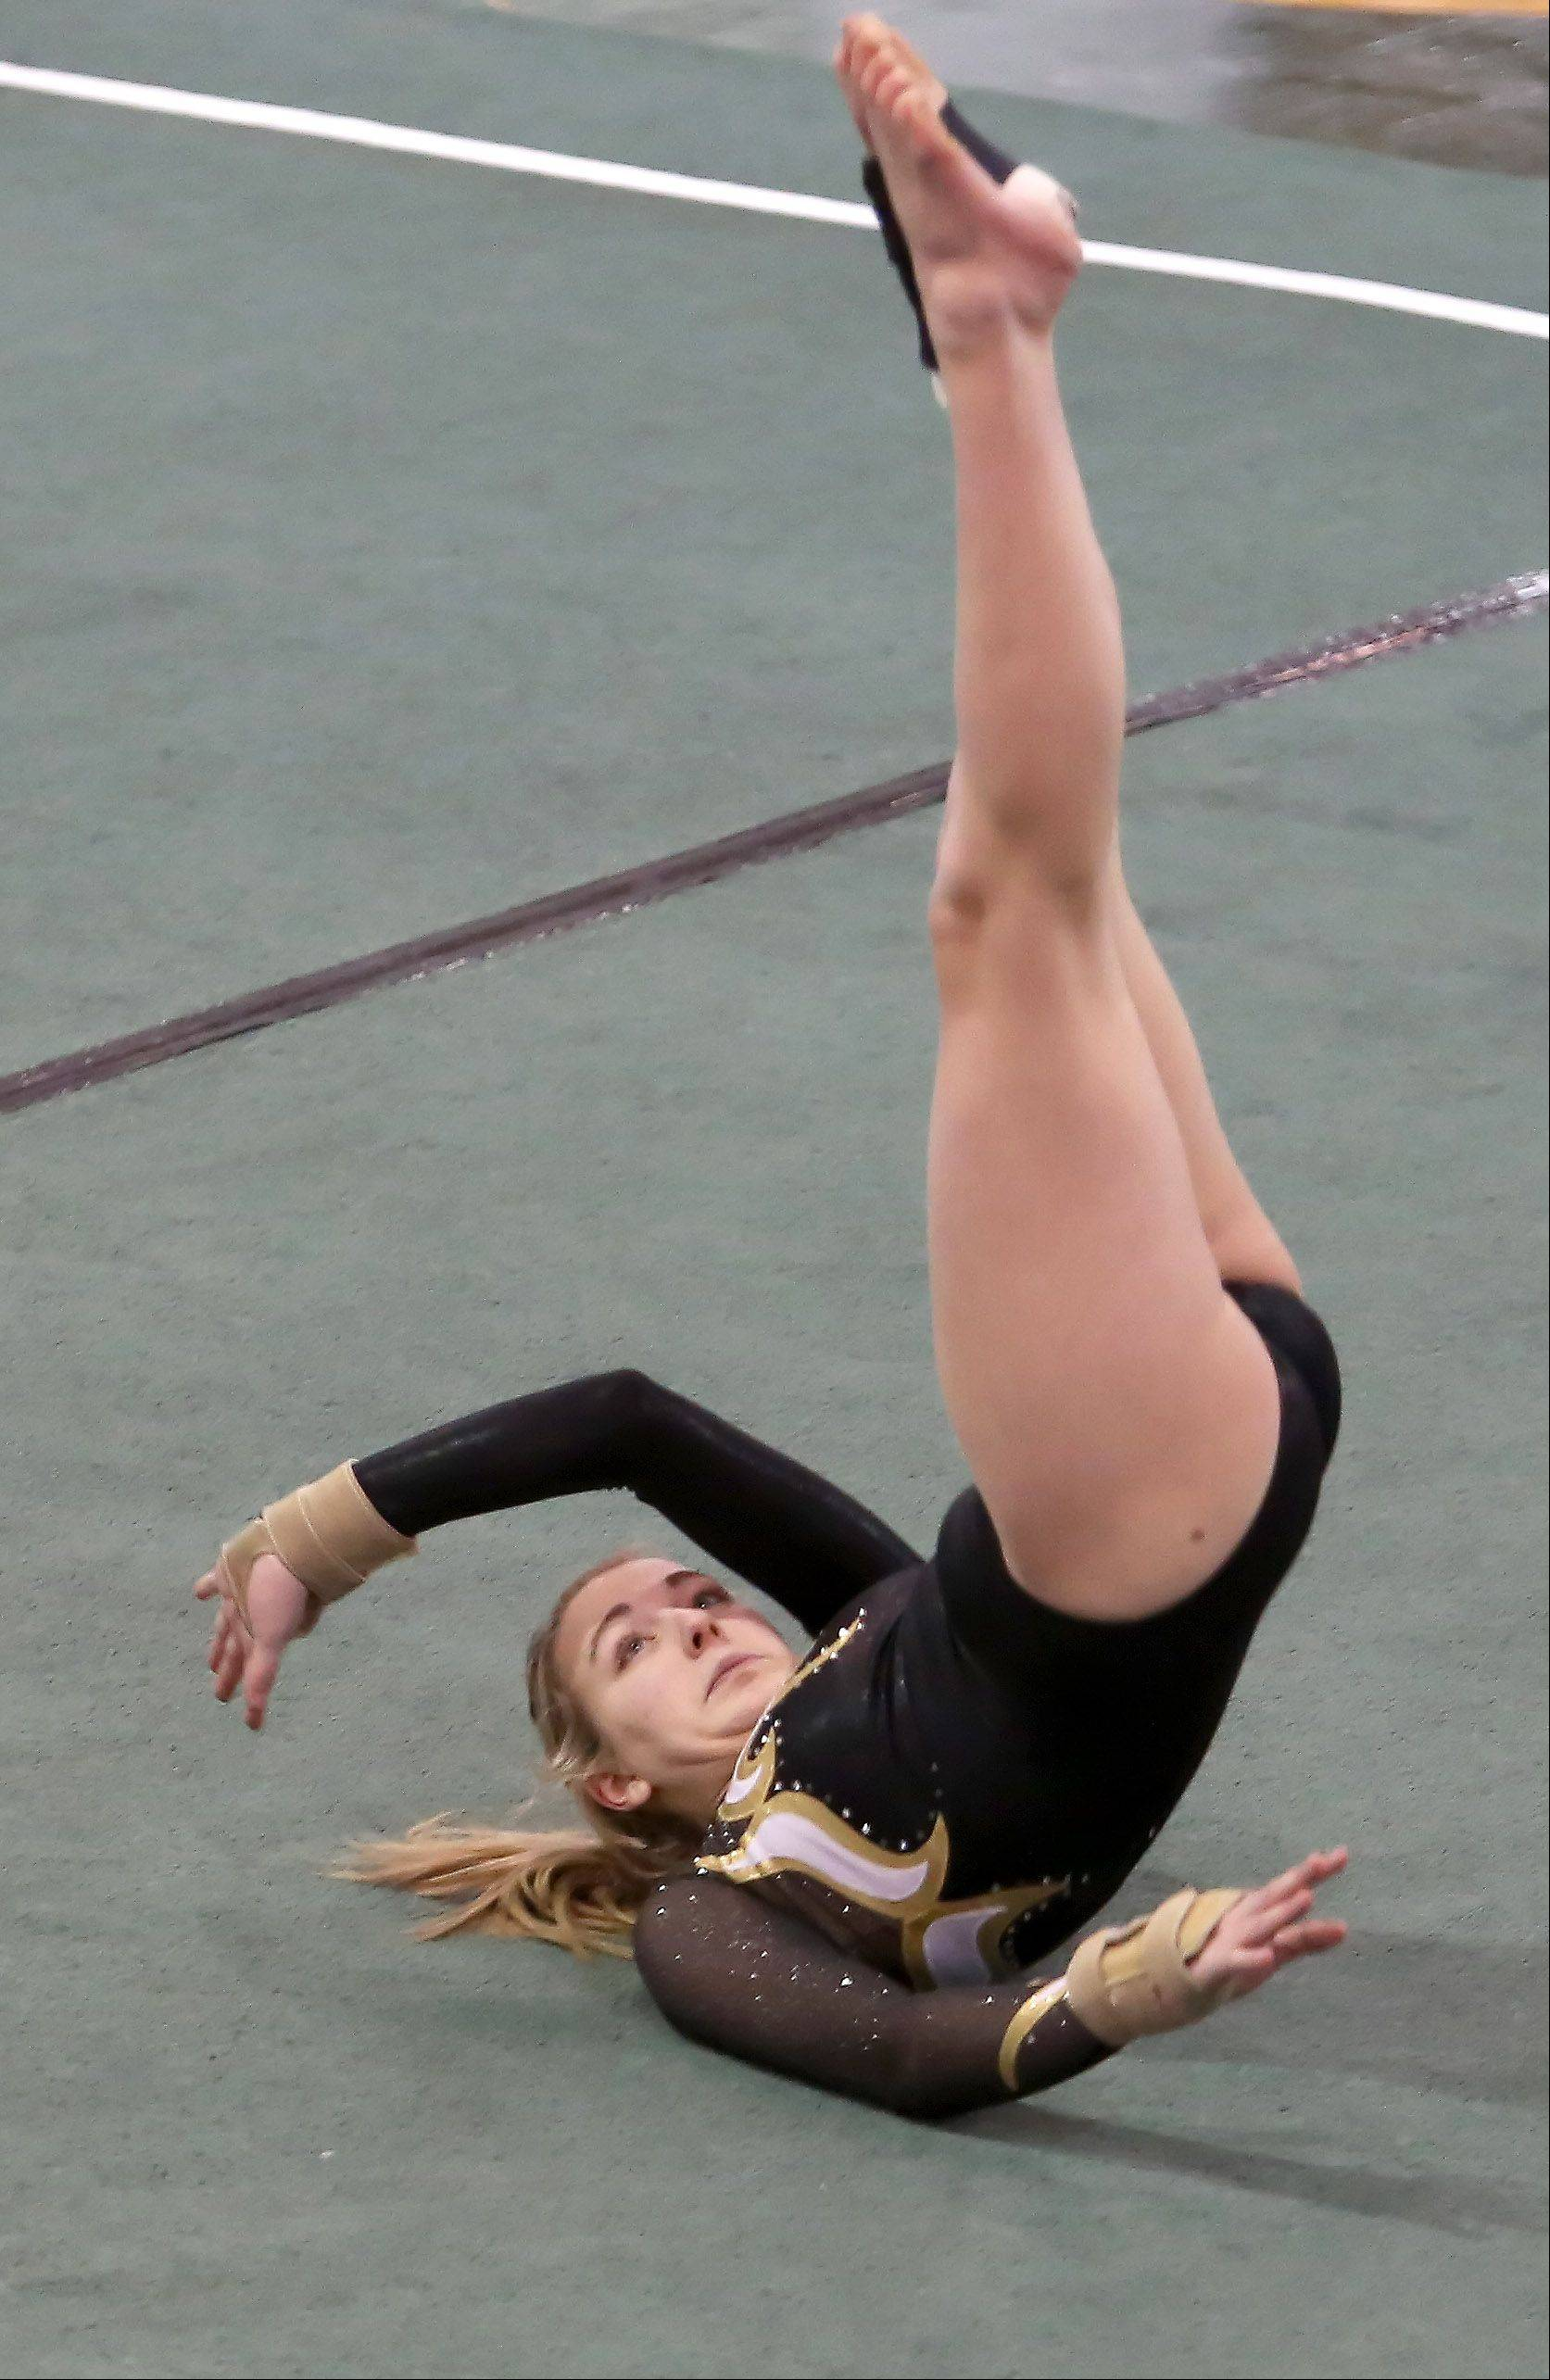 Erin Panhorst of Glenbard North performs her floor routine at sectional gymnastics at Glenbard West on Tuesday in Glen Ellyn.